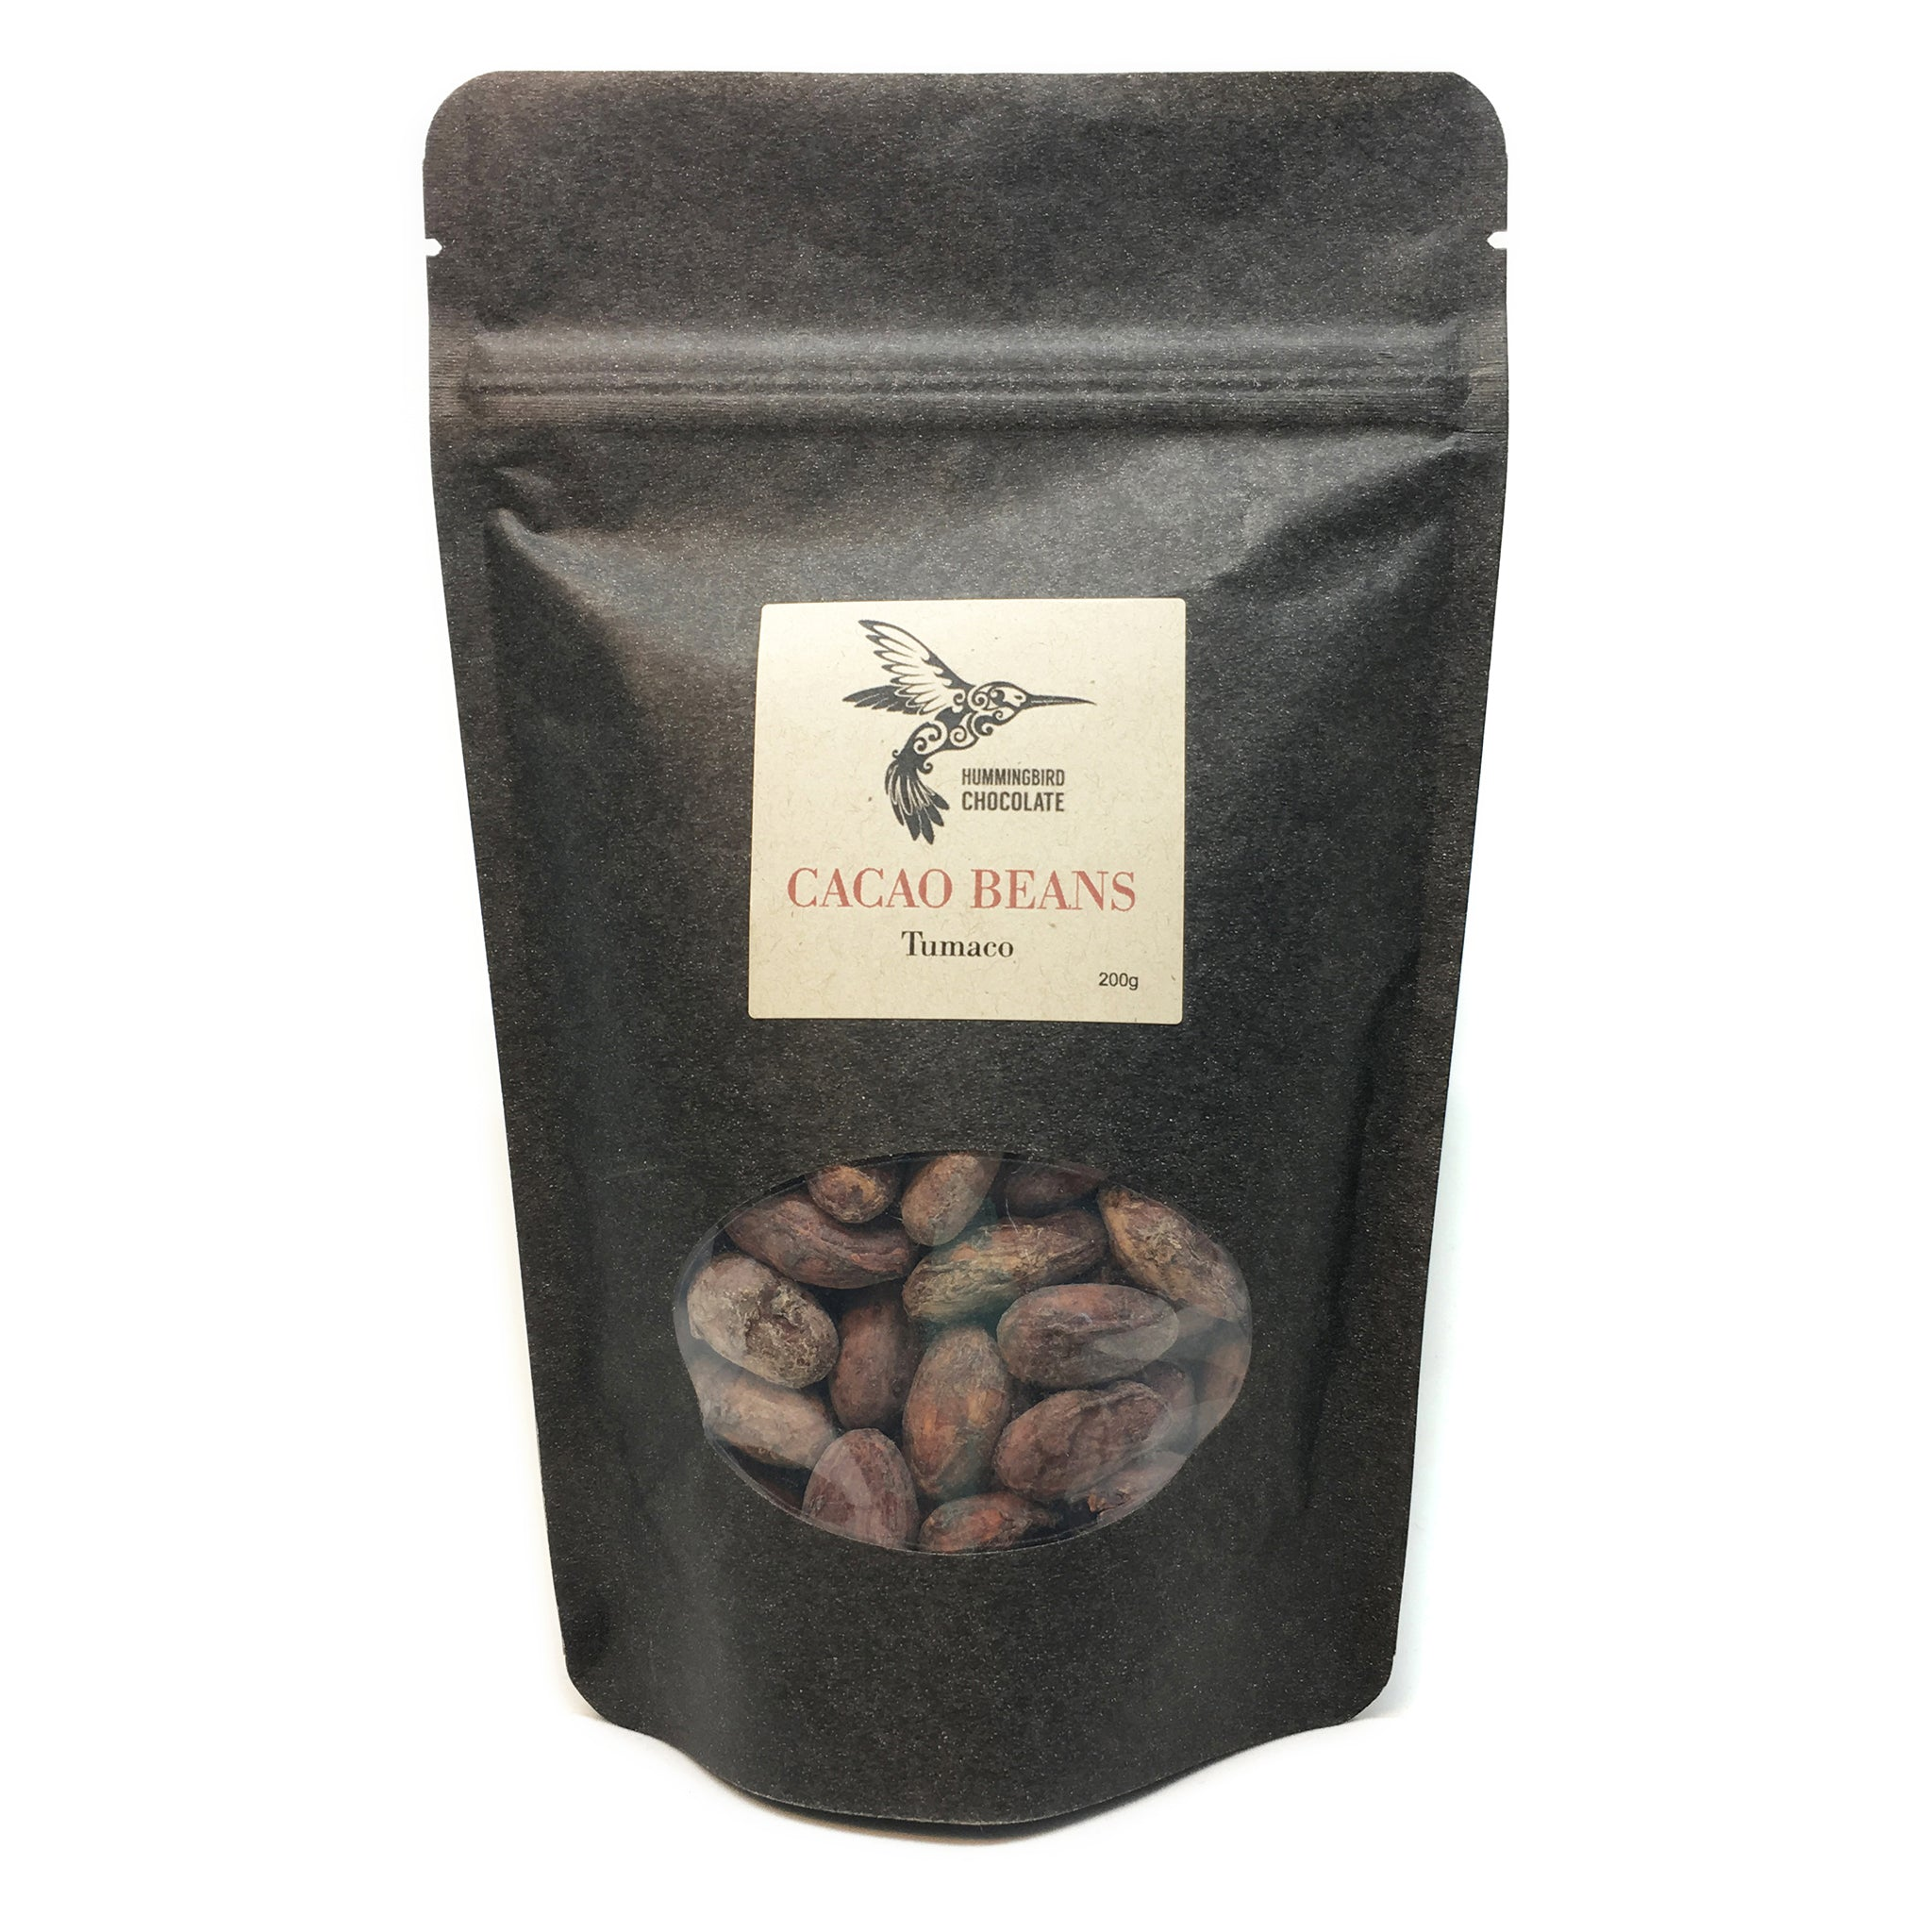 Hummingbird Chocolate Roasted Cacao Beans, 200g bag.